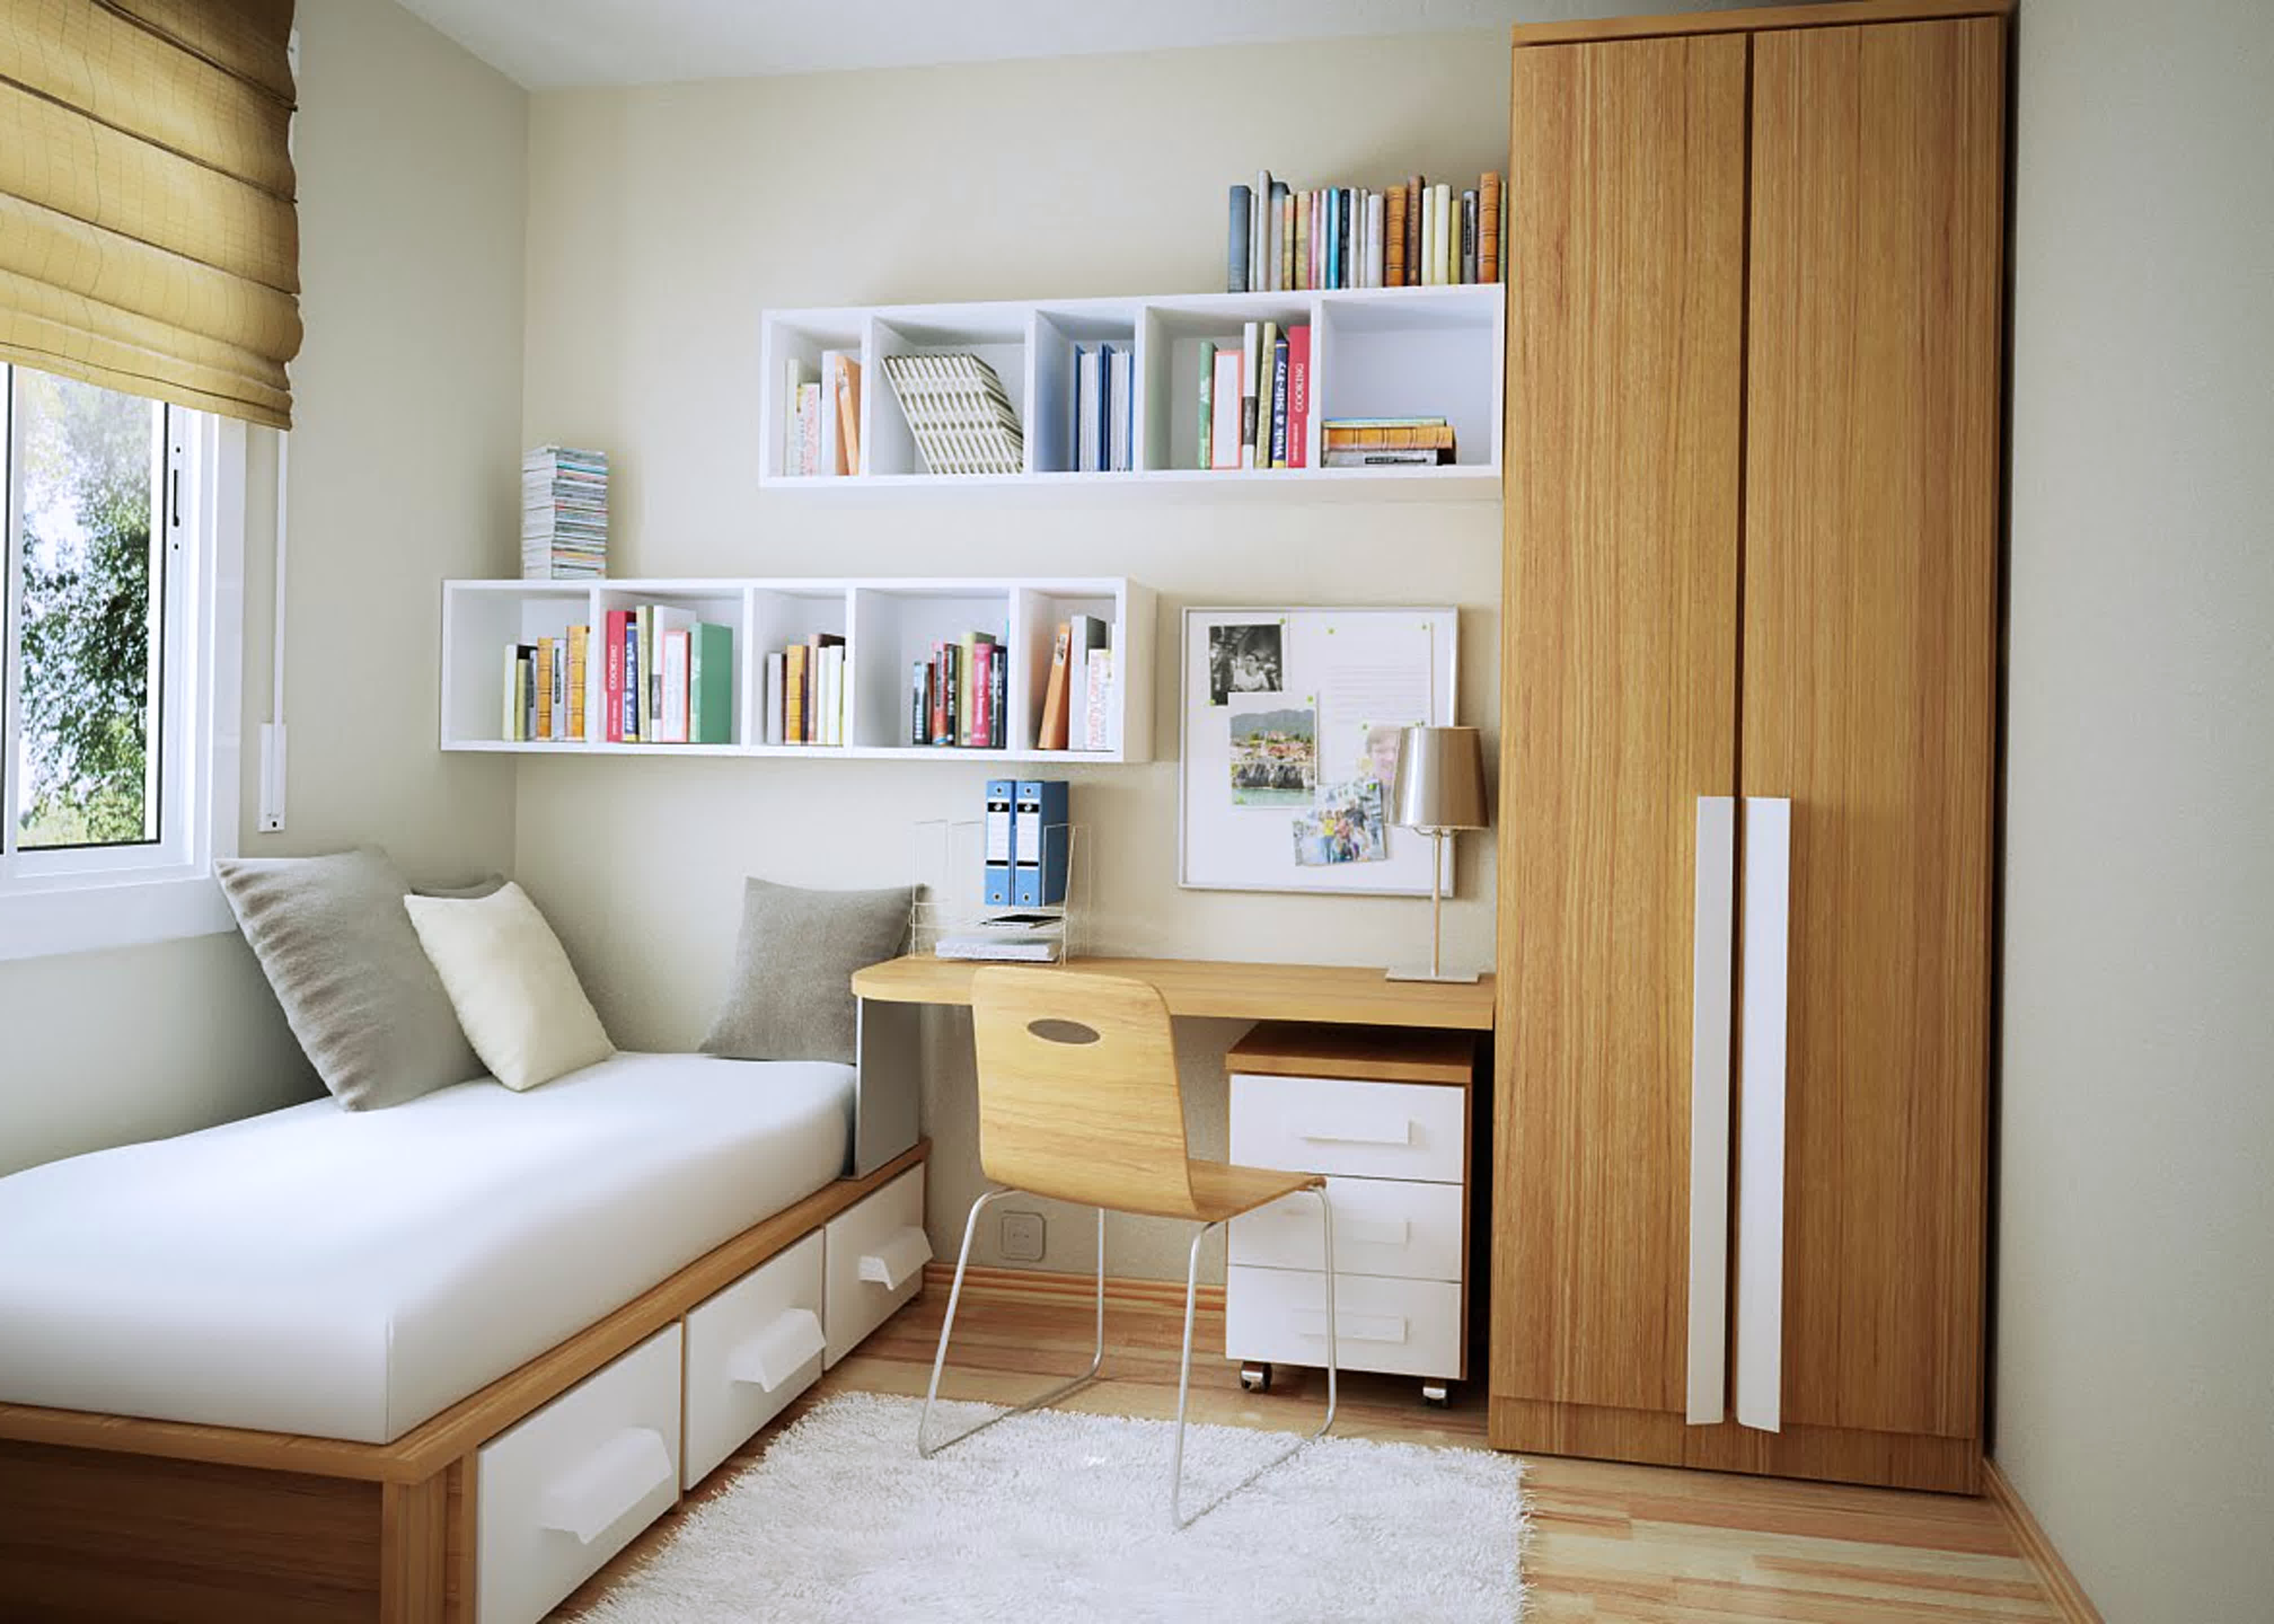 bedroom ideas for small space simple bedroom ideas for small space